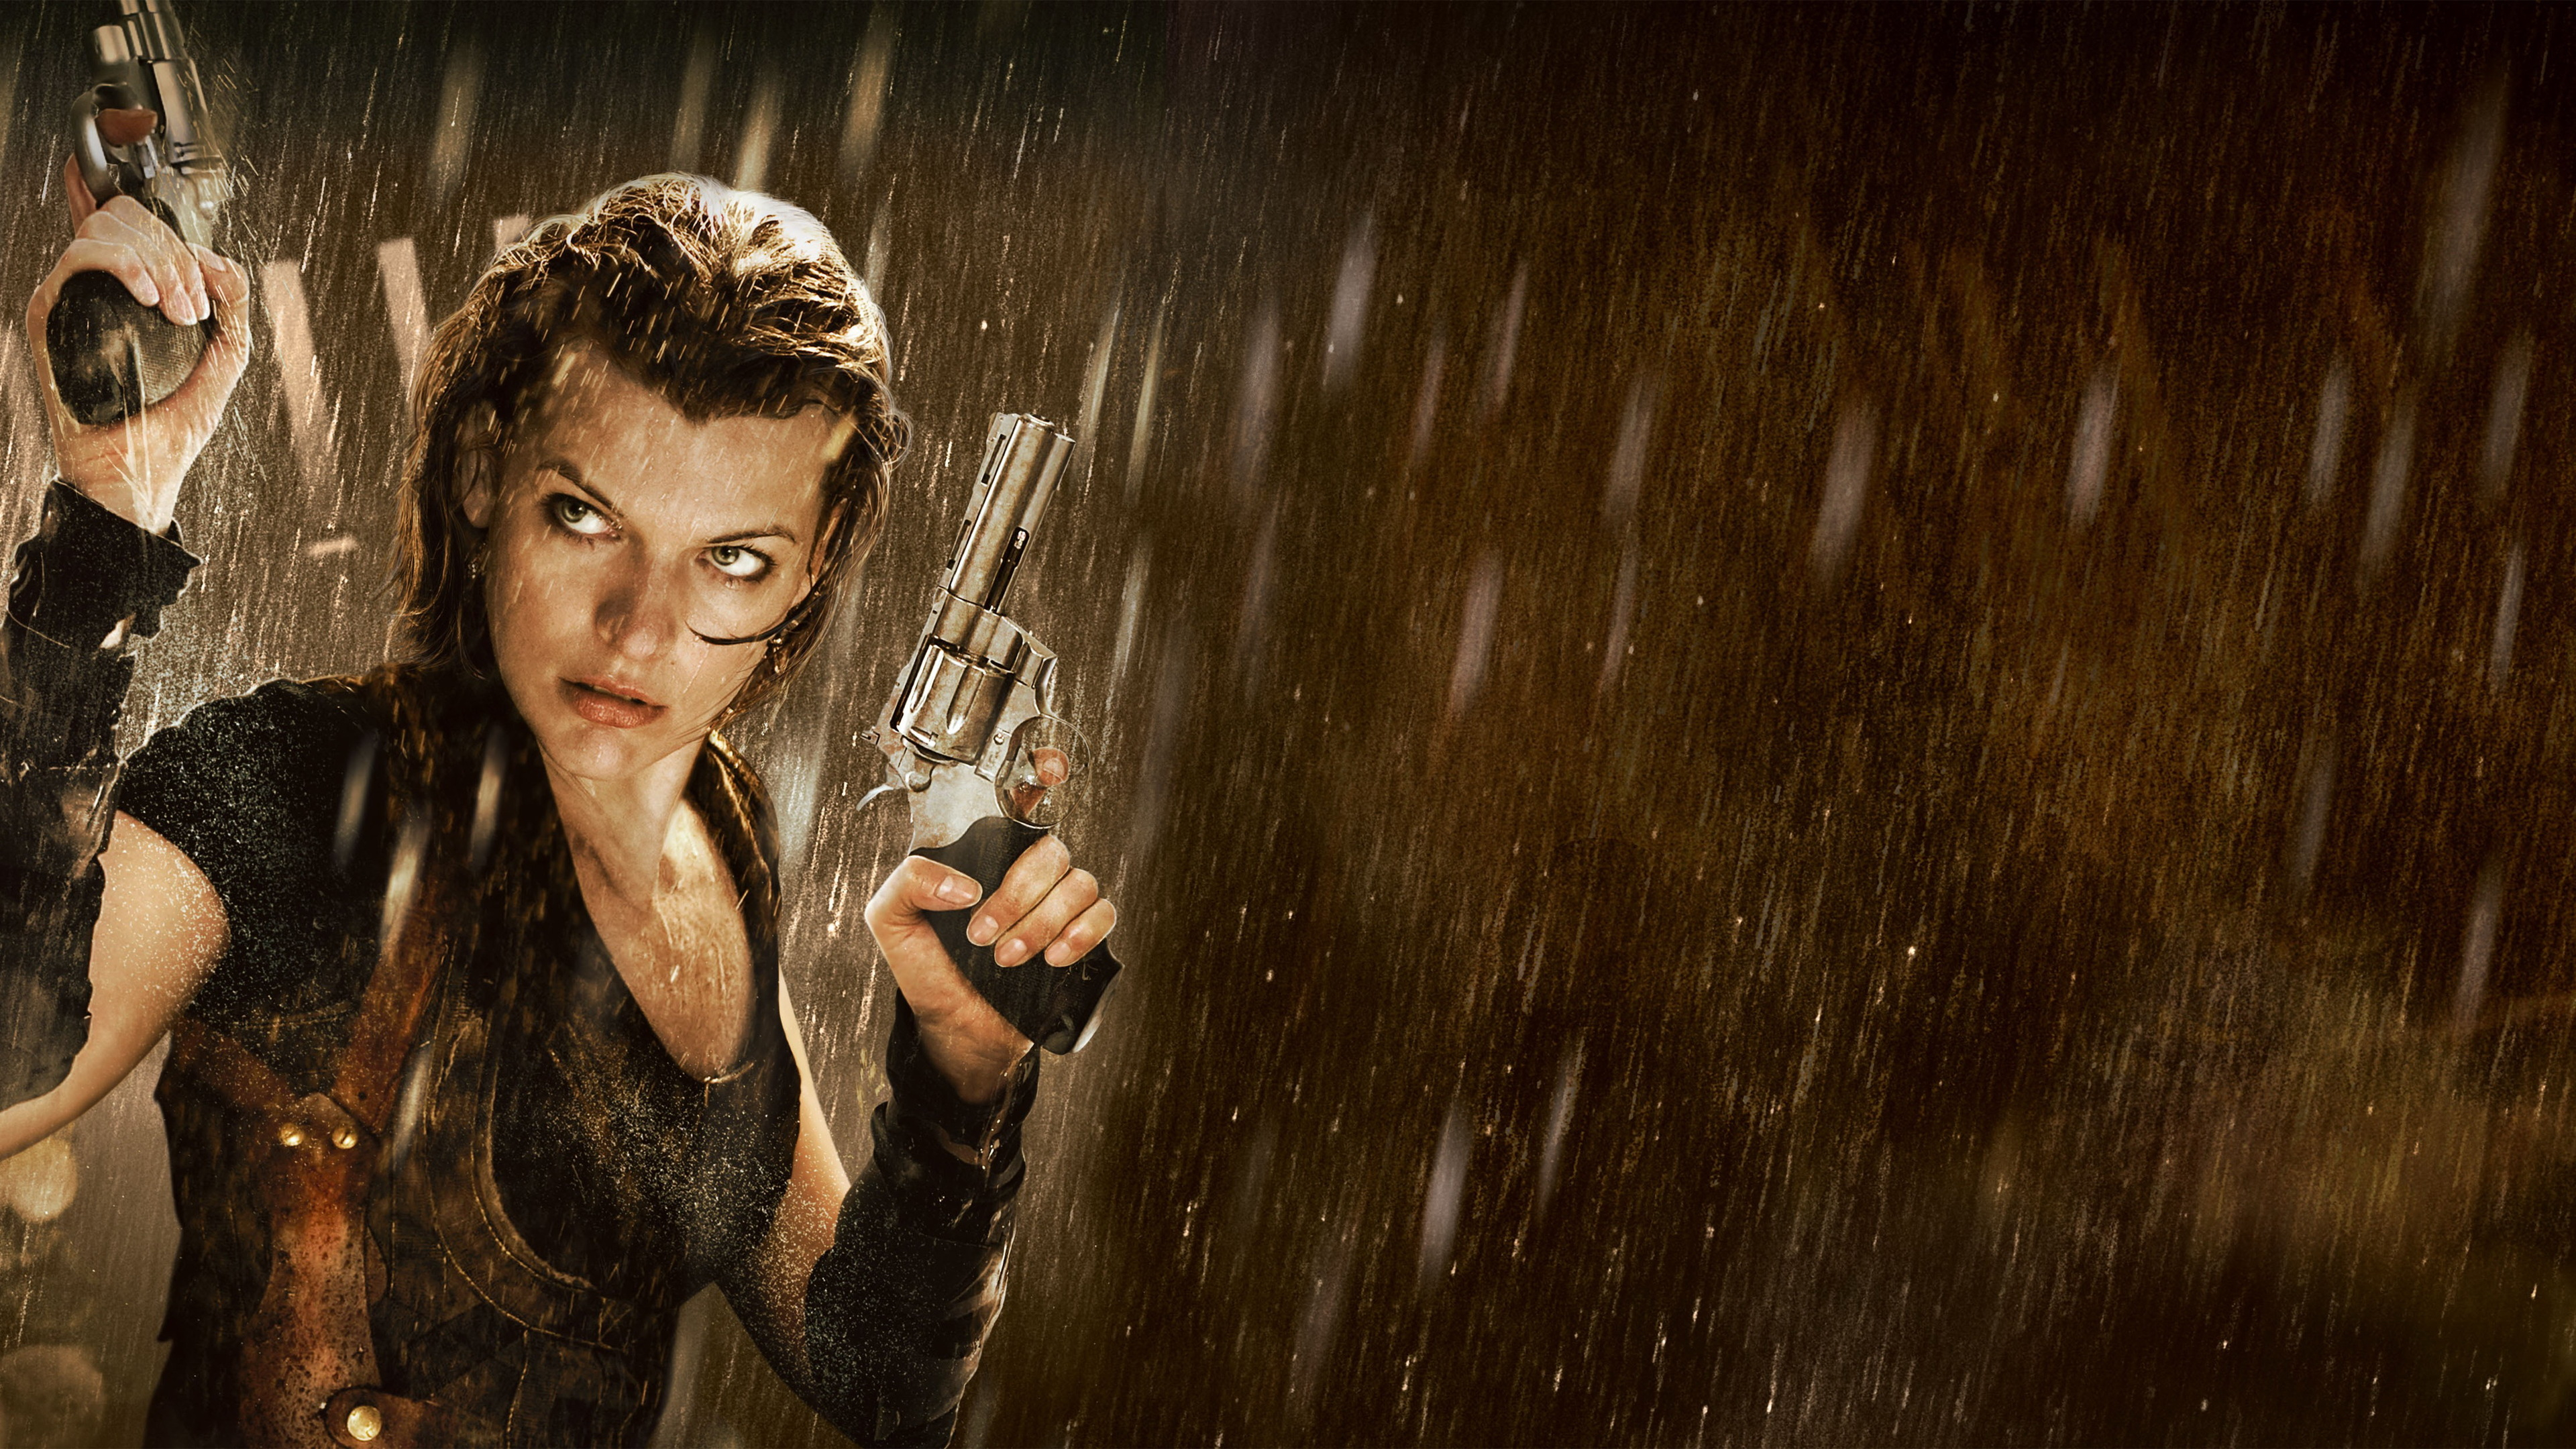 resident evil afterlife 1565055637 - Resident Evil Afterlife - resident evil wallpapers, movies wallpapers, hd-wallpapers, 5k wallpapers, 4k-wallpapers